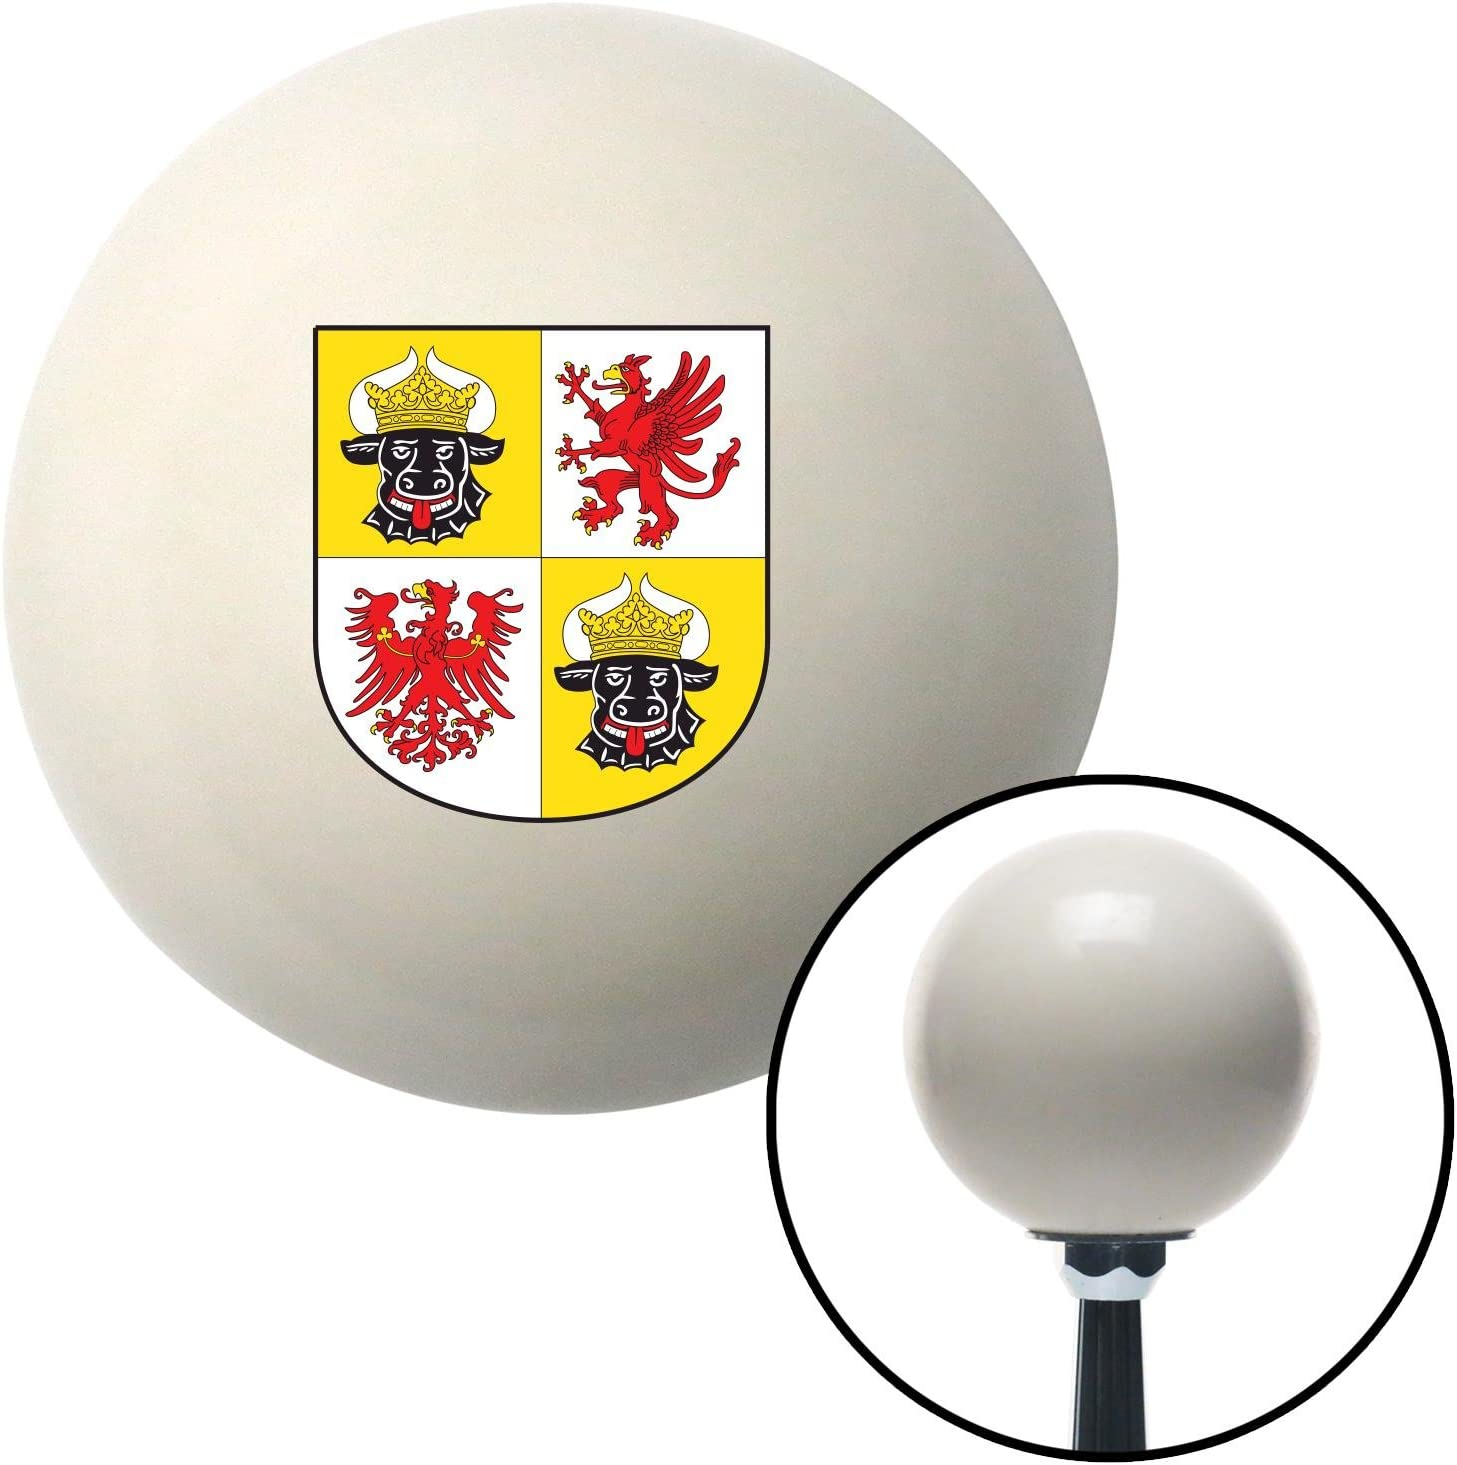 Mecklenburg Western Pomerania Coat of Arms American Shifter 76119 Ivory Shift Knob with M16 x 1.5 Insert